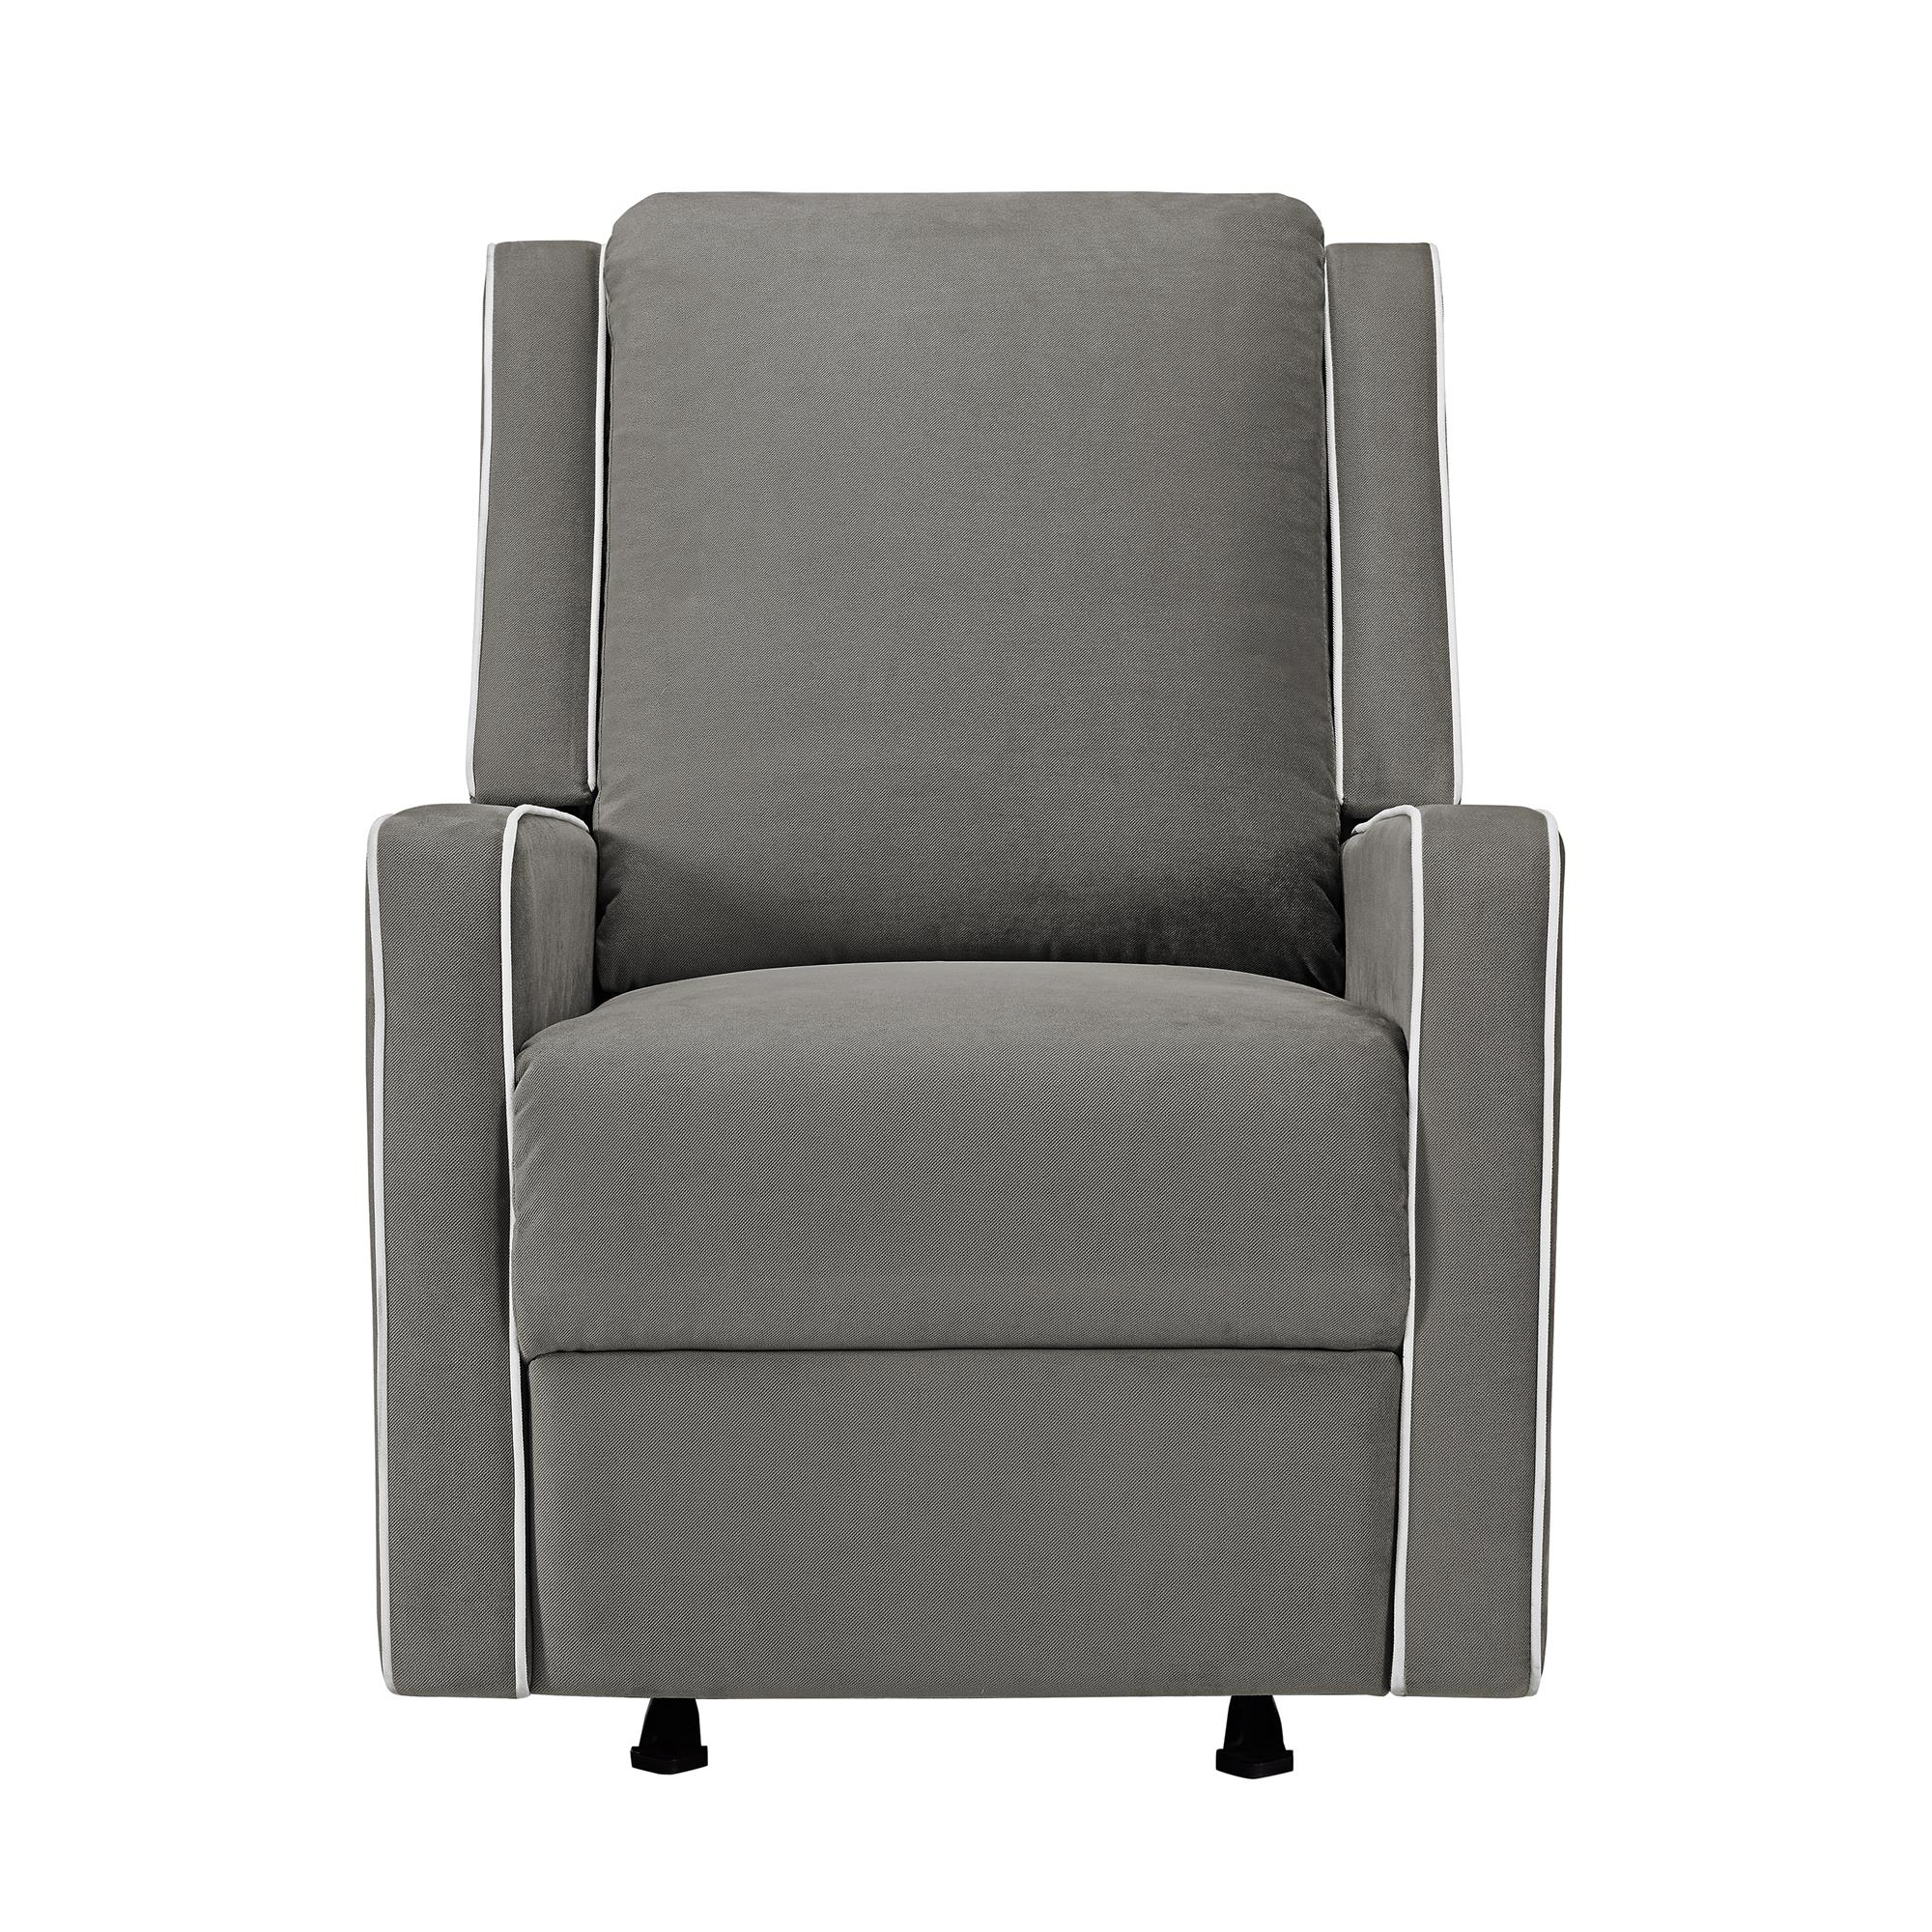 Abbey Swivel Glider Recliners Throughout Trendy Baby Relax Robyn Rocking Recliner, Graphite Grey – Walmart (View 10 of 20)